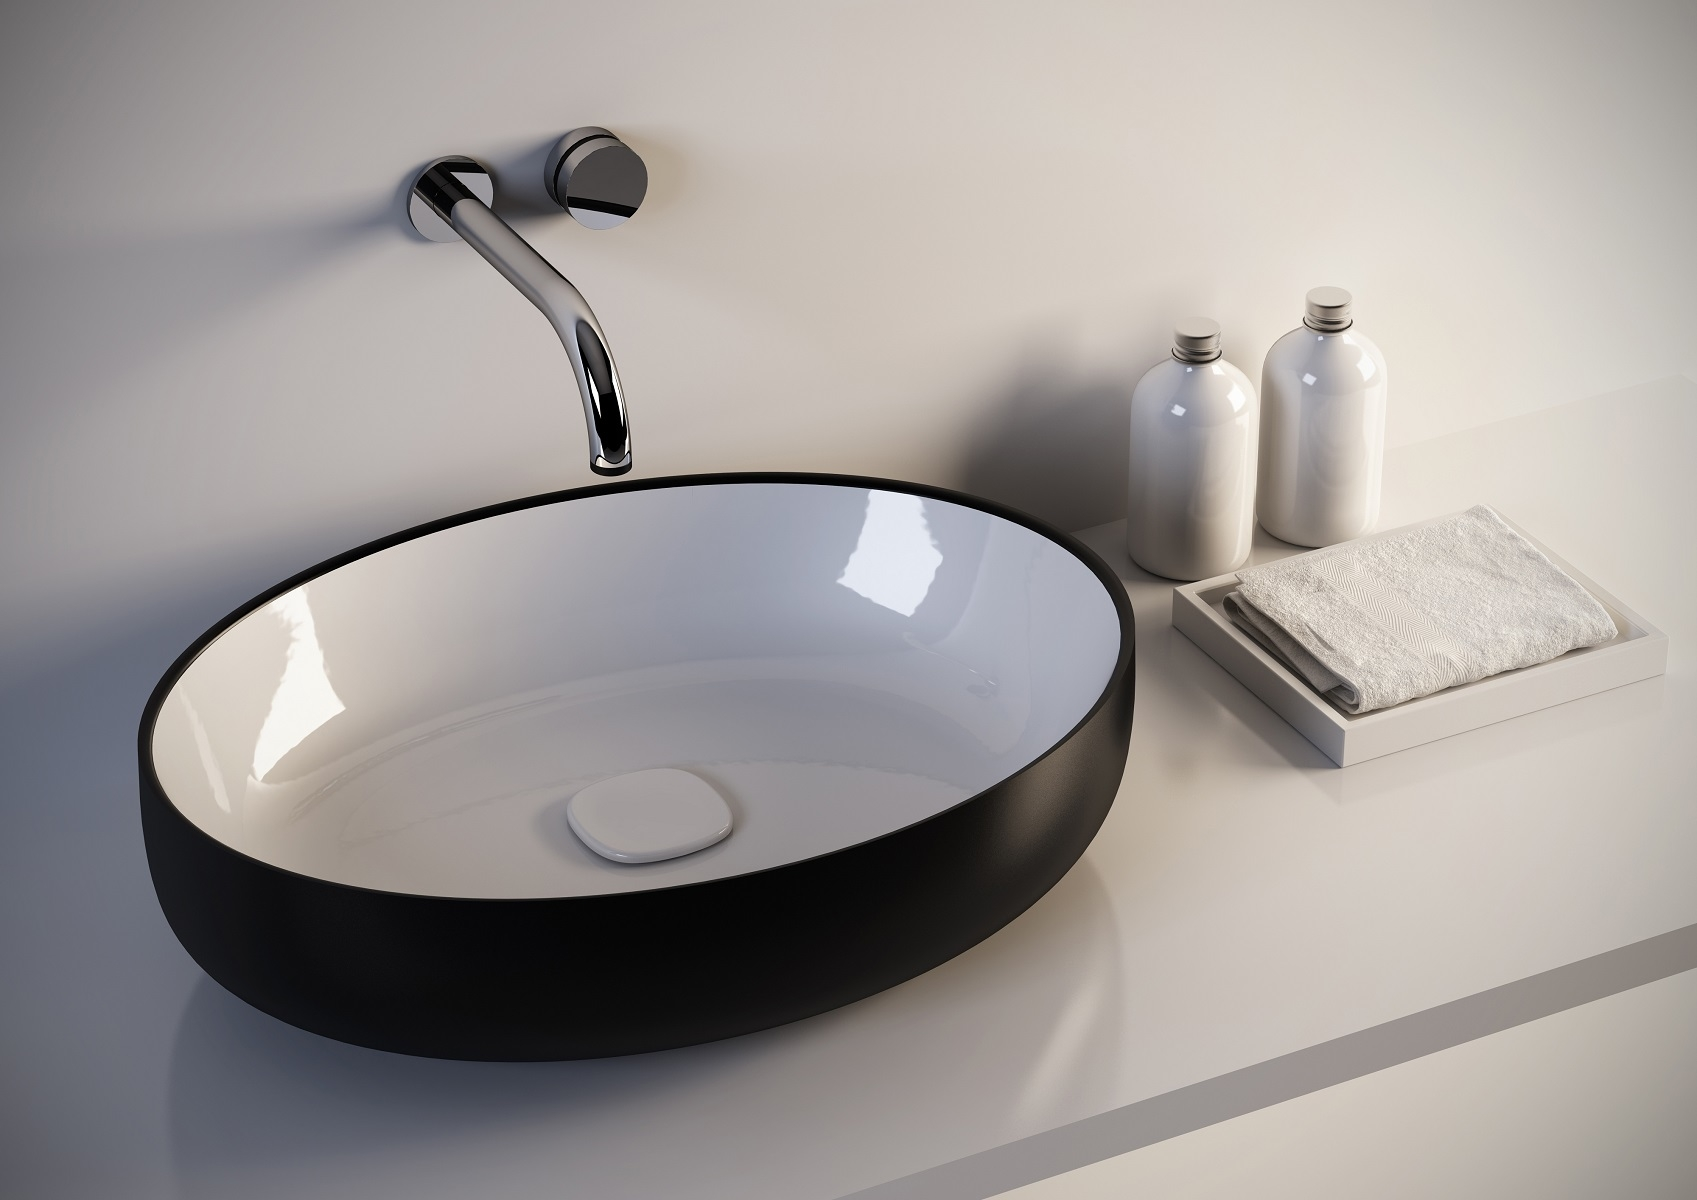 Metamorfosi-black-wht Oval Ceramic Bathroom Vessel Sink